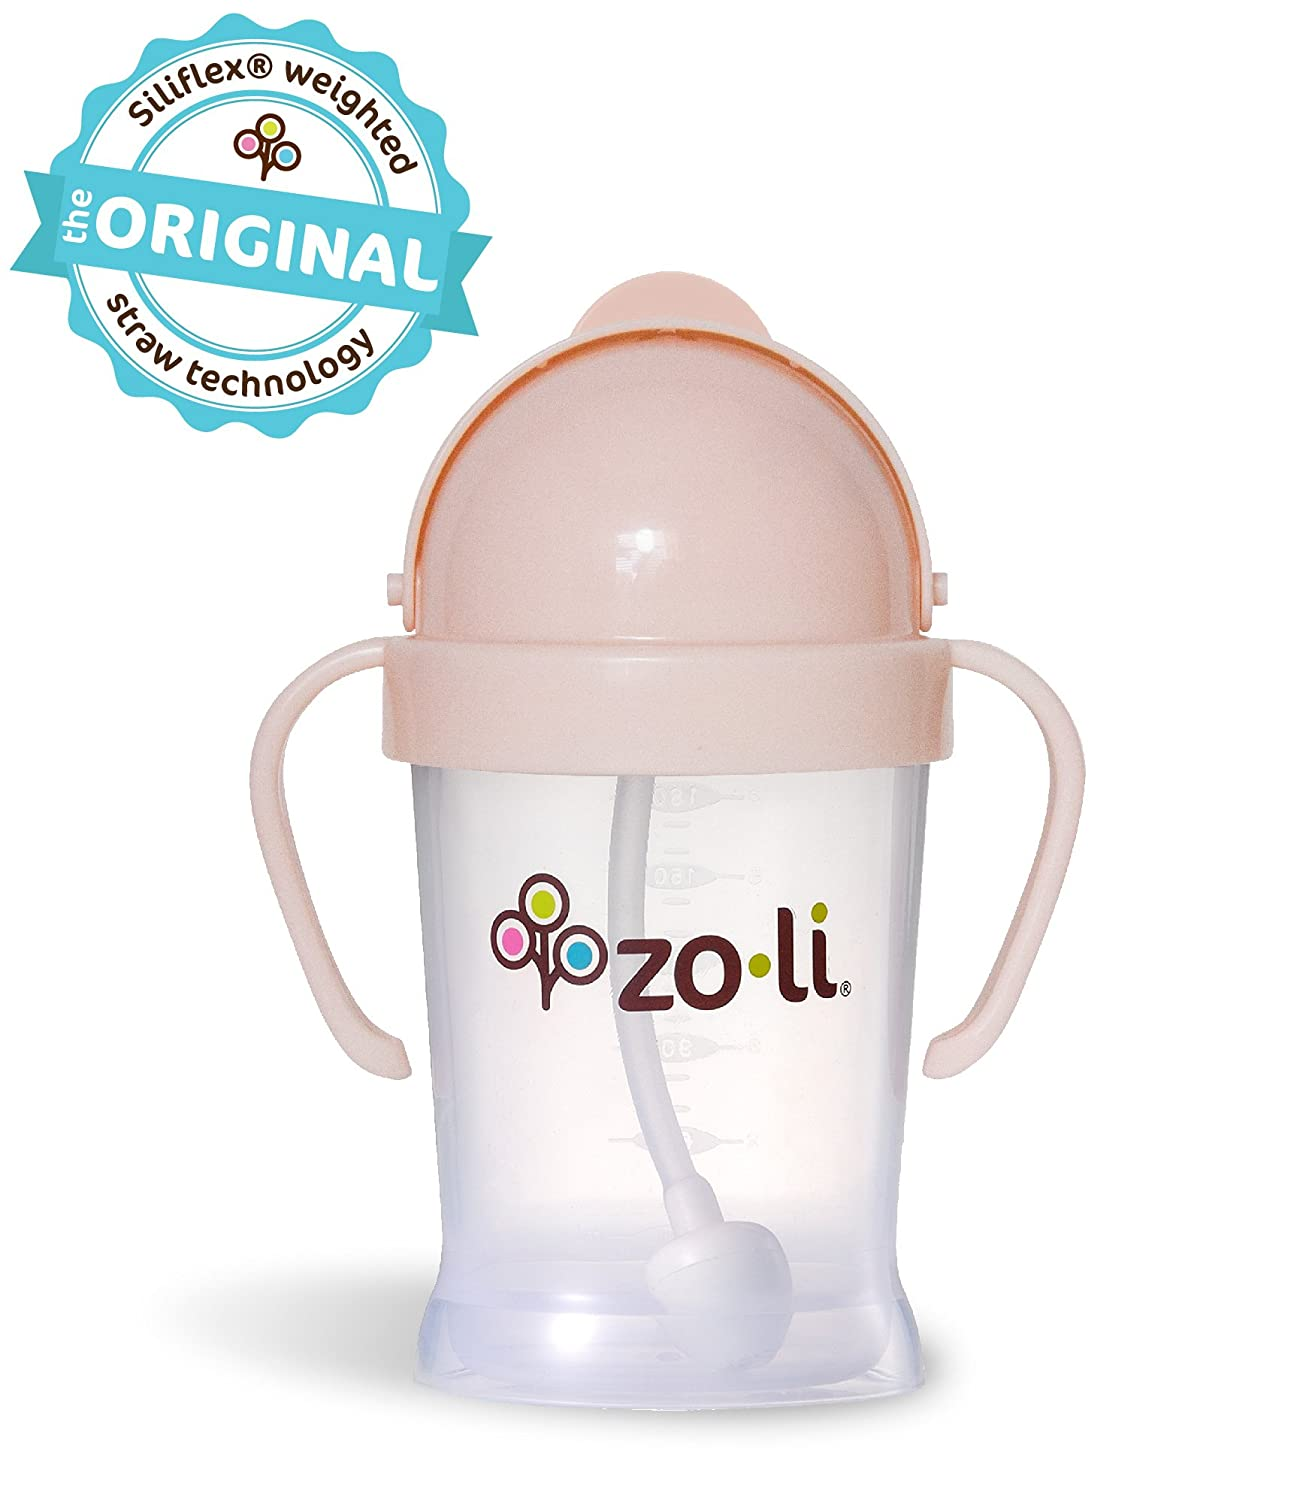 Top 7 Best Sippy Cup for 6 Month Old Breastfed Baby Reviews in 2019 1